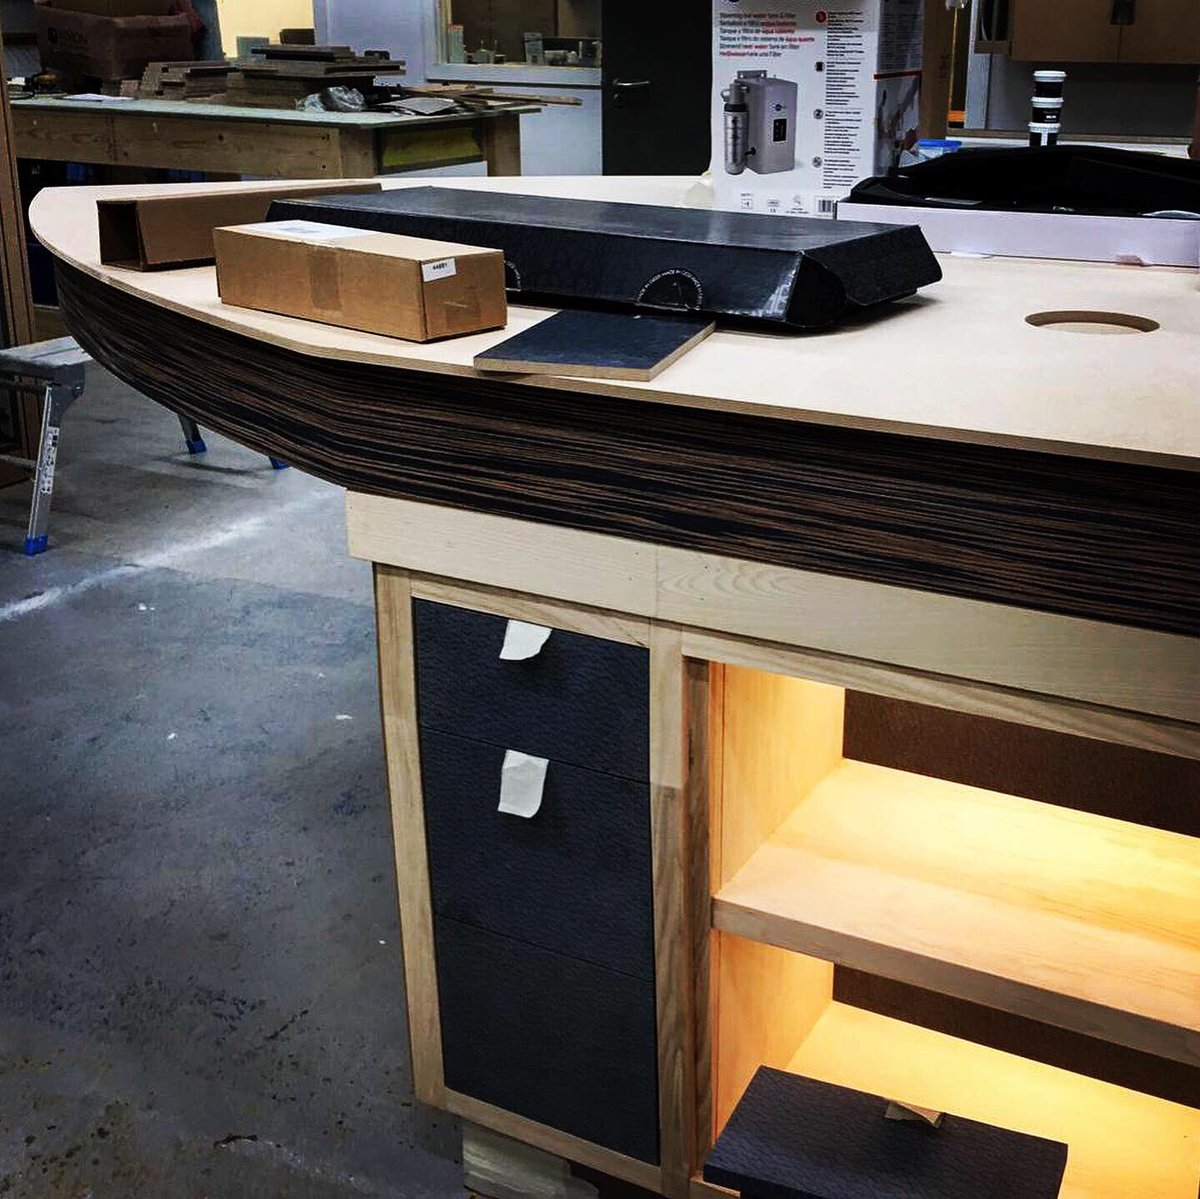 YDA team visit Innovate Furniture to see our concept come to life. A 'Riva' power boat inspired social island. Subliminal in shape, this functional island will create a balance between luxury and elegance. #workshop #kitchen #island #kitchenisland #workinprogress #concept #ideas